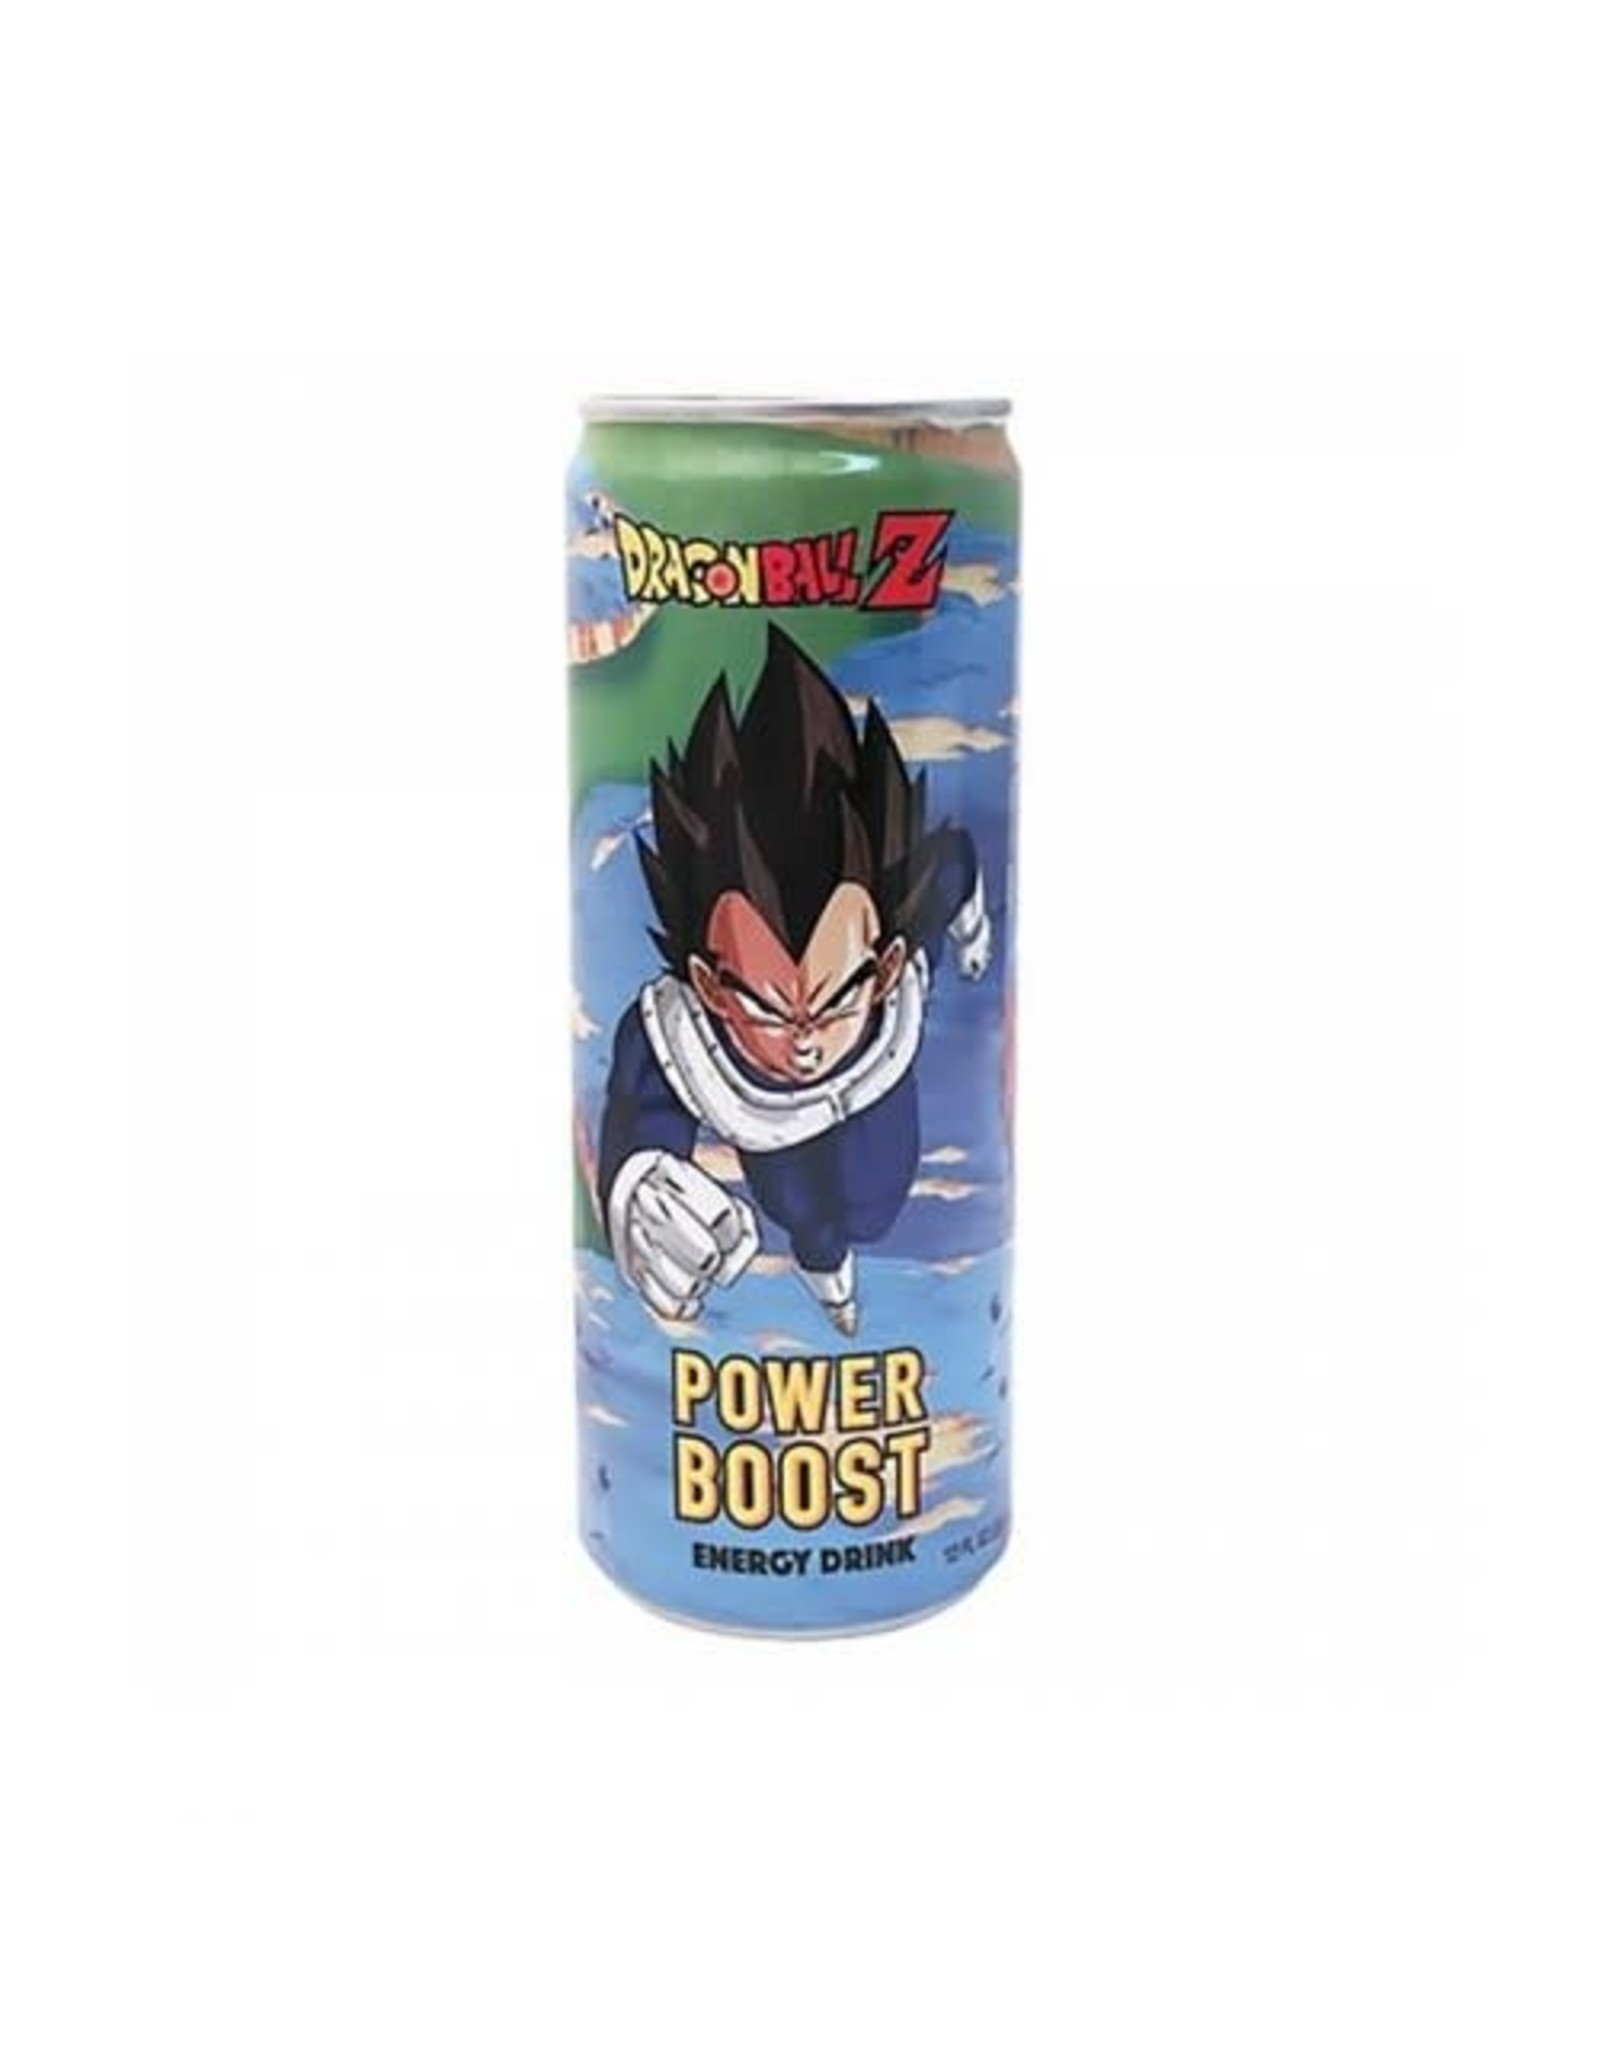 Boston America DRAGON BALL Warrior Power Energy Drink - Vegeta